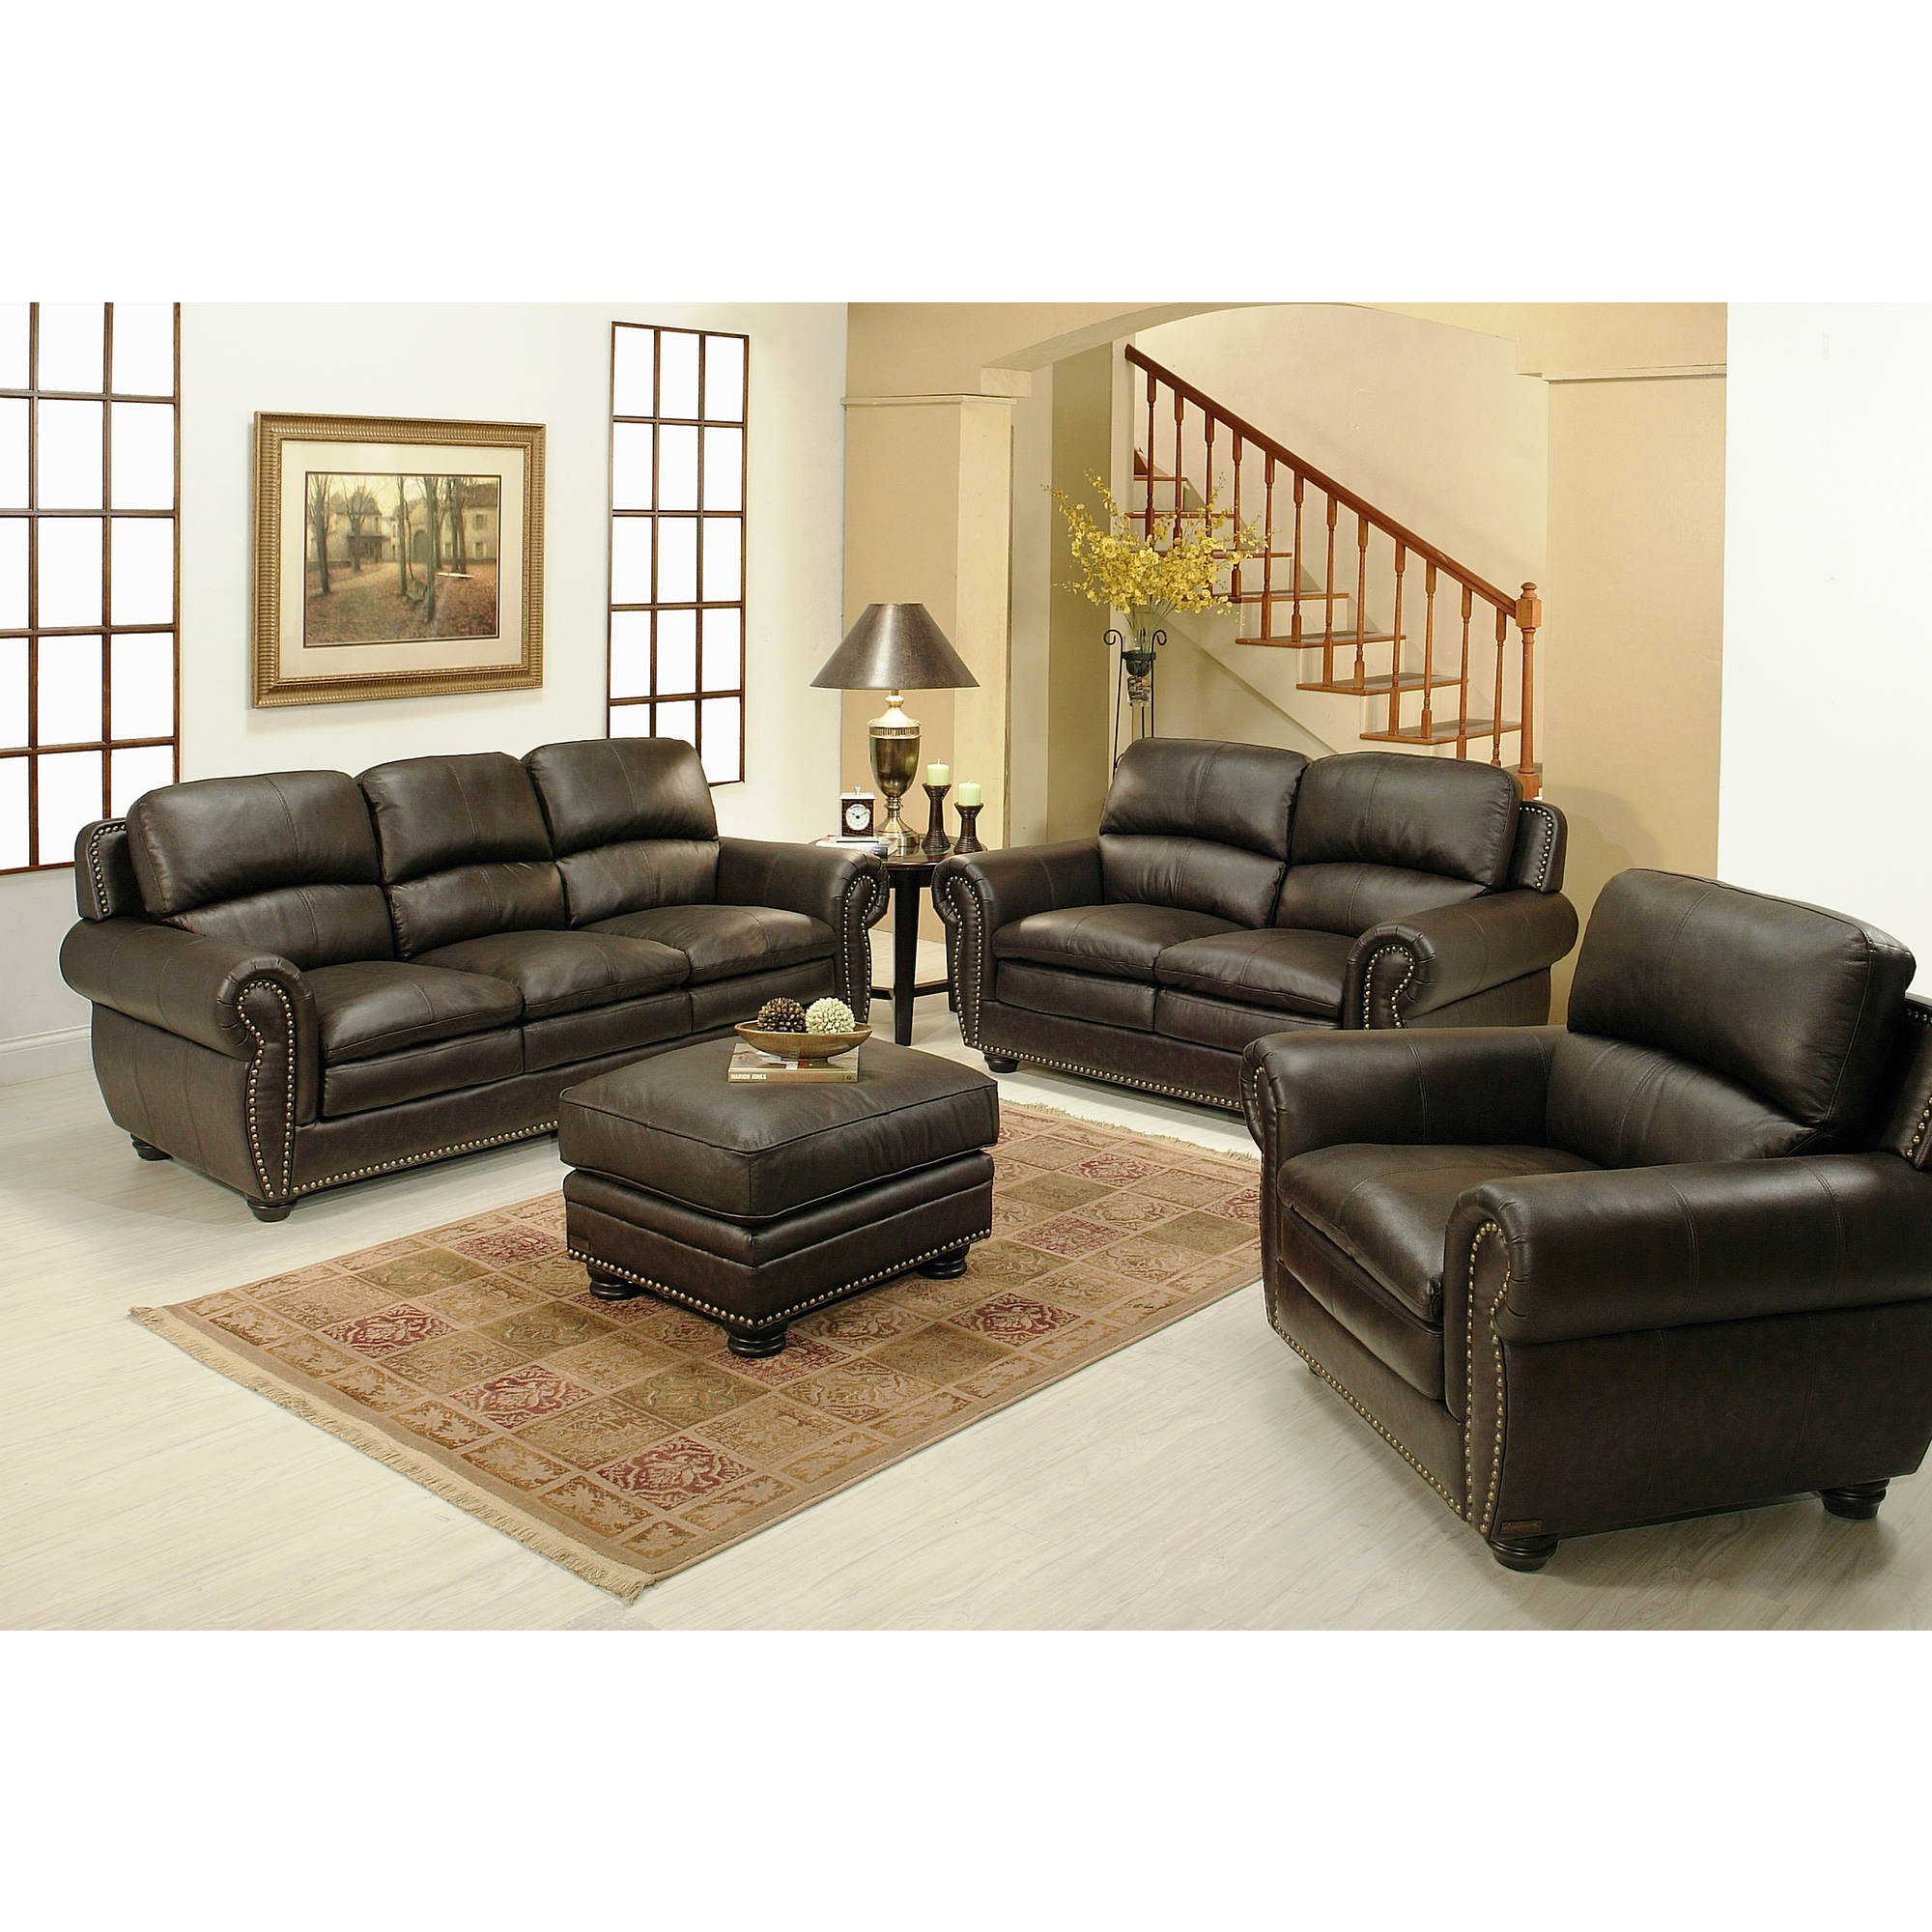 abbyson living kingston 4 pc leather living room set 2 tone